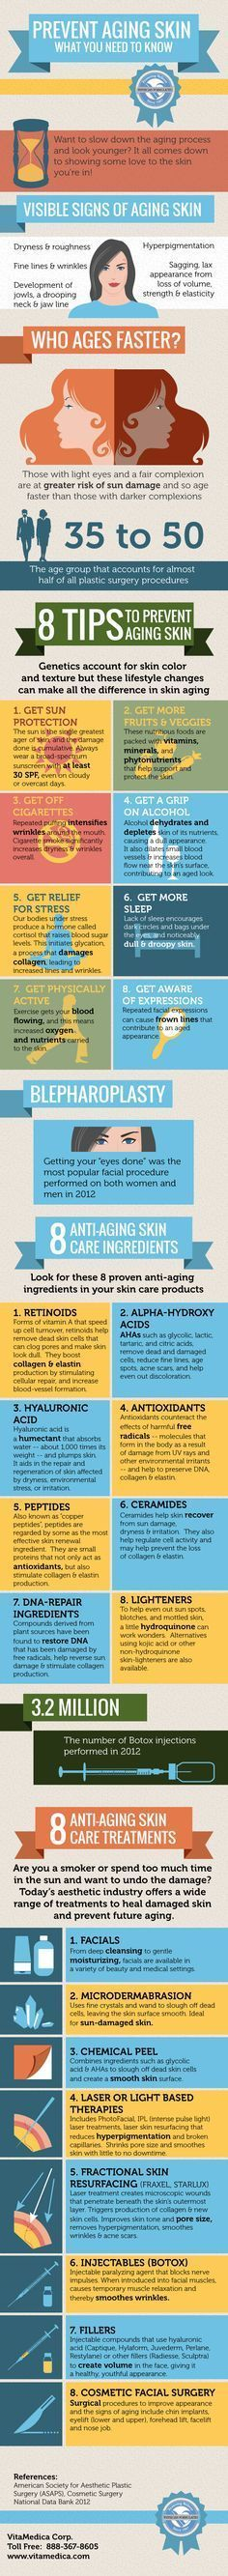 Prevent Aging Skin – What You Need to Know.......What to slow down the aging process? Then, follow these 8 dietary & lifestyle tips and make sure that your skin care products contain these anti-aging ingredients. Consider a skin care treatment to address hyperpigmentation or cosmetic treatment to fix fine lines, wrinkles & more.